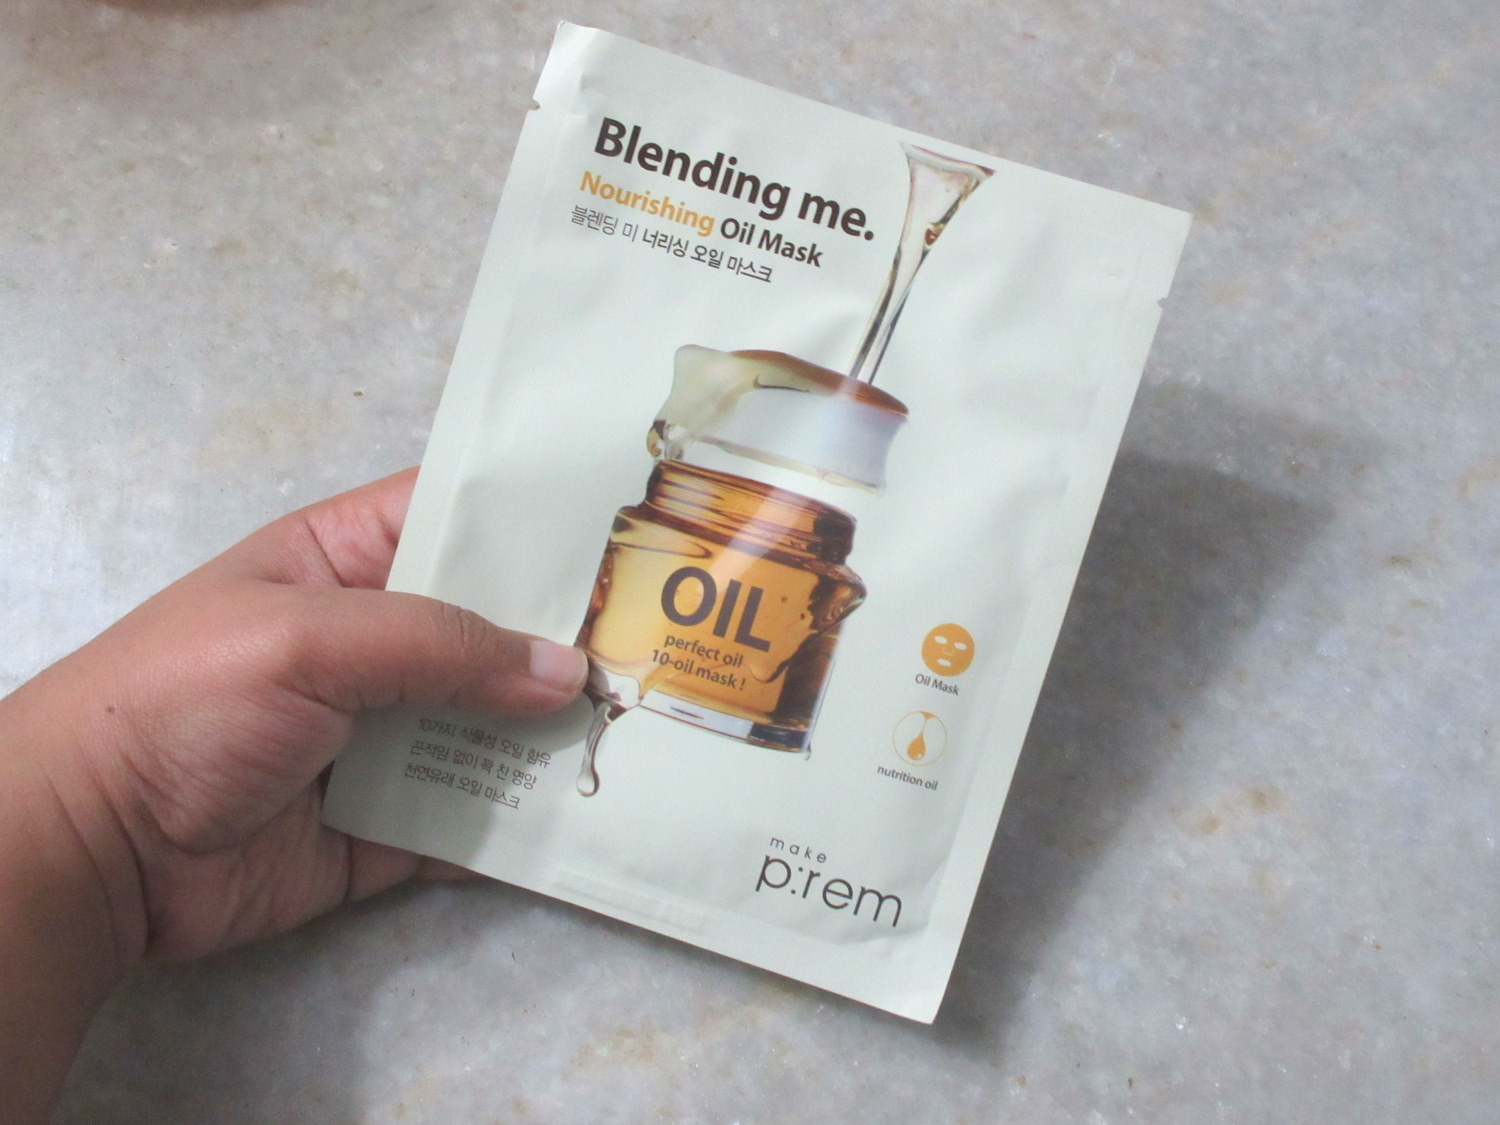 make prem nourishing oil sheet mask, make p:rem blending me nourishing oil mask, make prem blending me nourishing oil mask